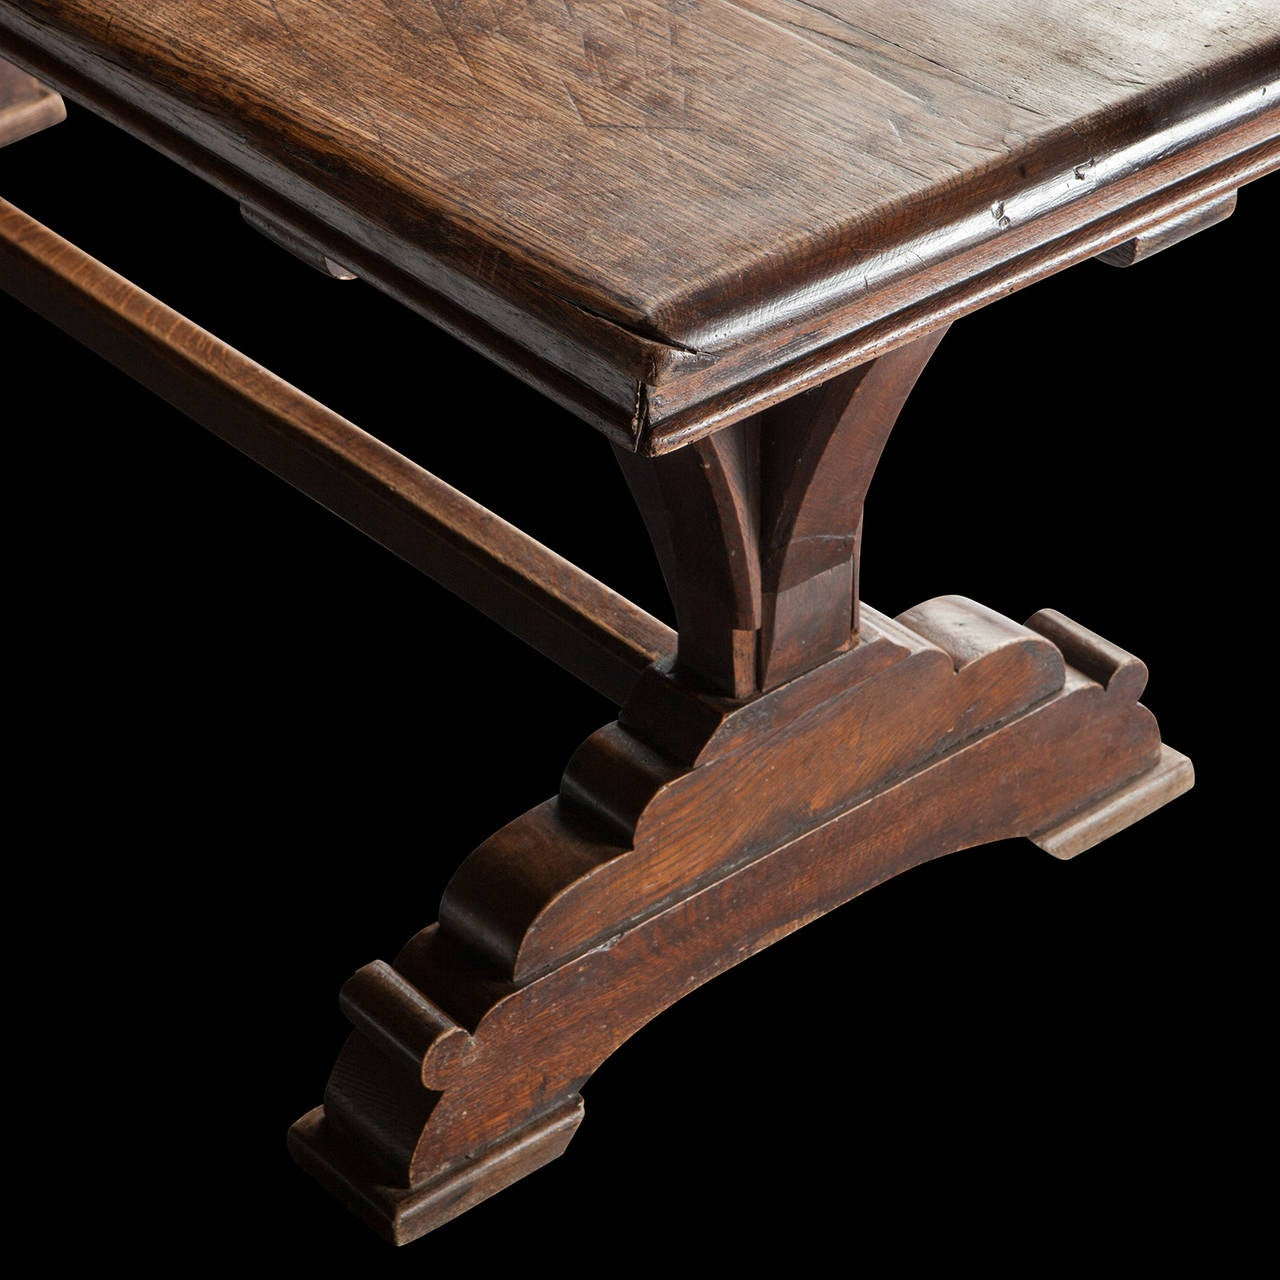 Gothic Refectory Table For Sale at 1stdibs : TABLE29764l from www.1stdibs.com size 1280 x 1280 jpeg 169kB